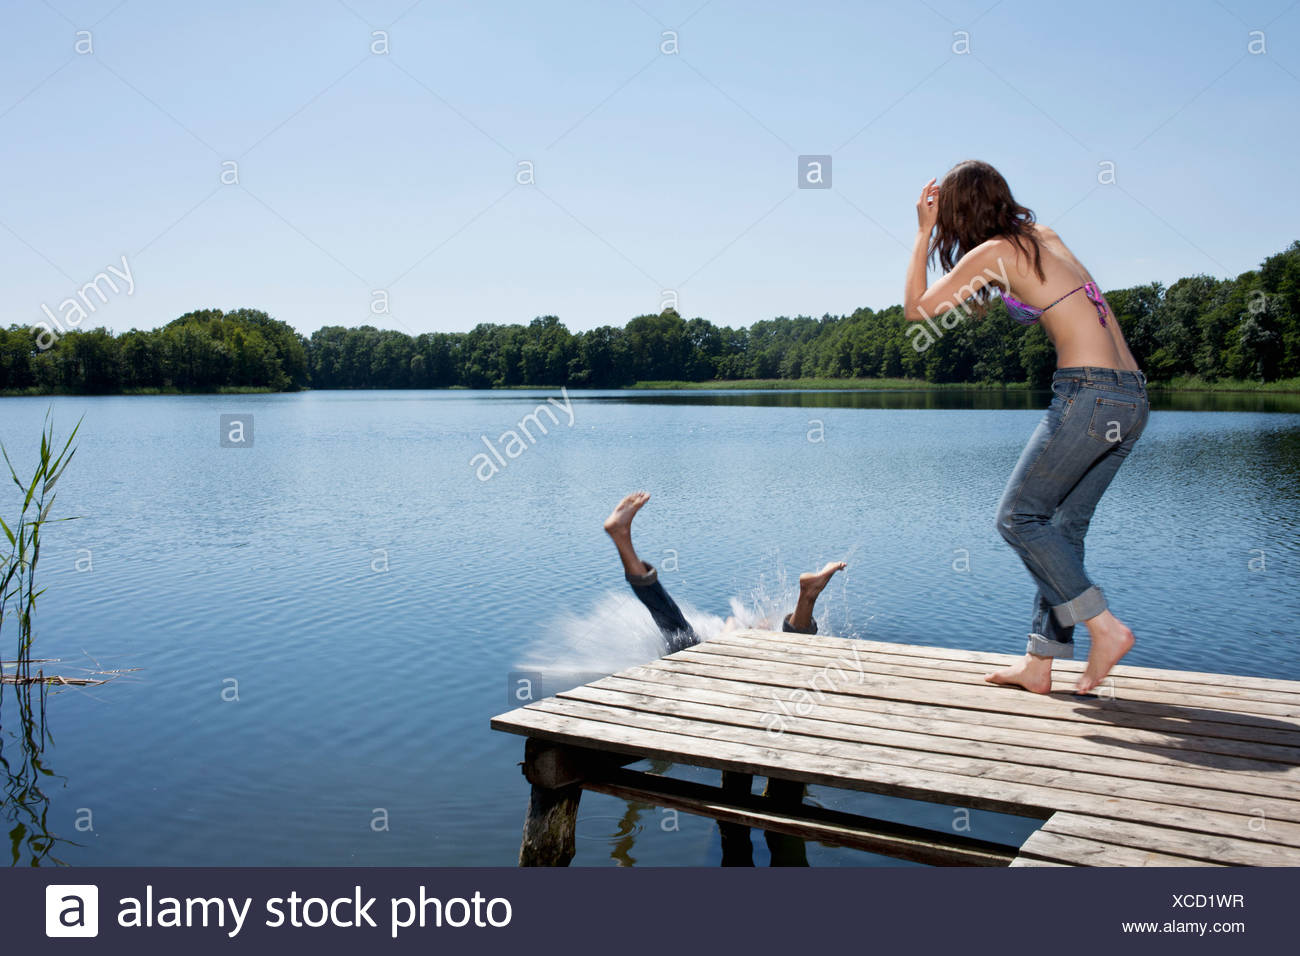 Guy splashes into water from jetty as girl watches - Stock Image